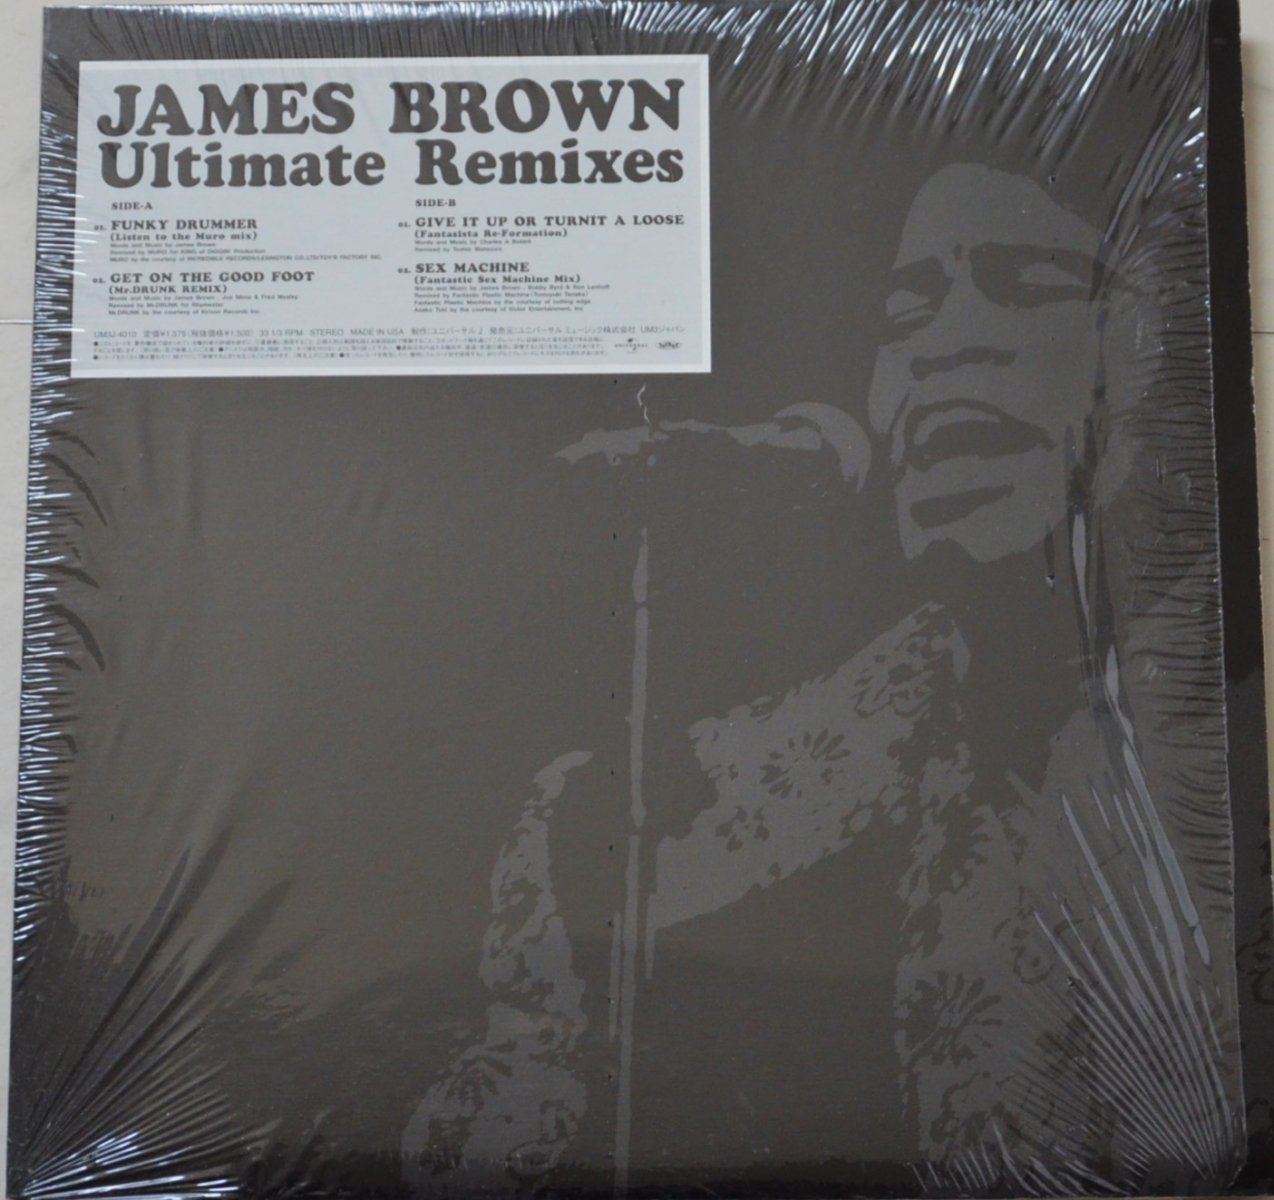 JAMES BROWN / FUNKY DRUMMER (LISTEN TO THE MURO MIX) (ULTIMATE REMIXES) (12